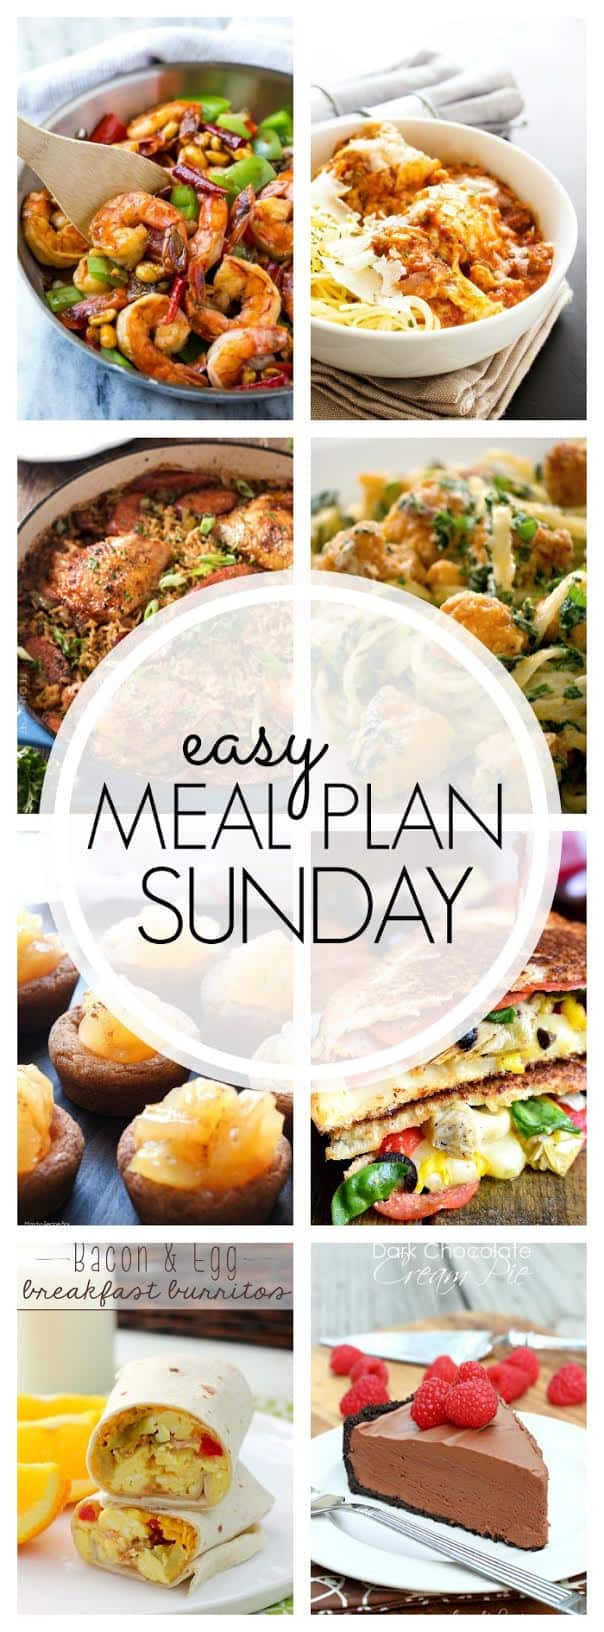 The BEST Weekly Meal Plan! Everything you need for a week's worth of delicious meals...all in one place!